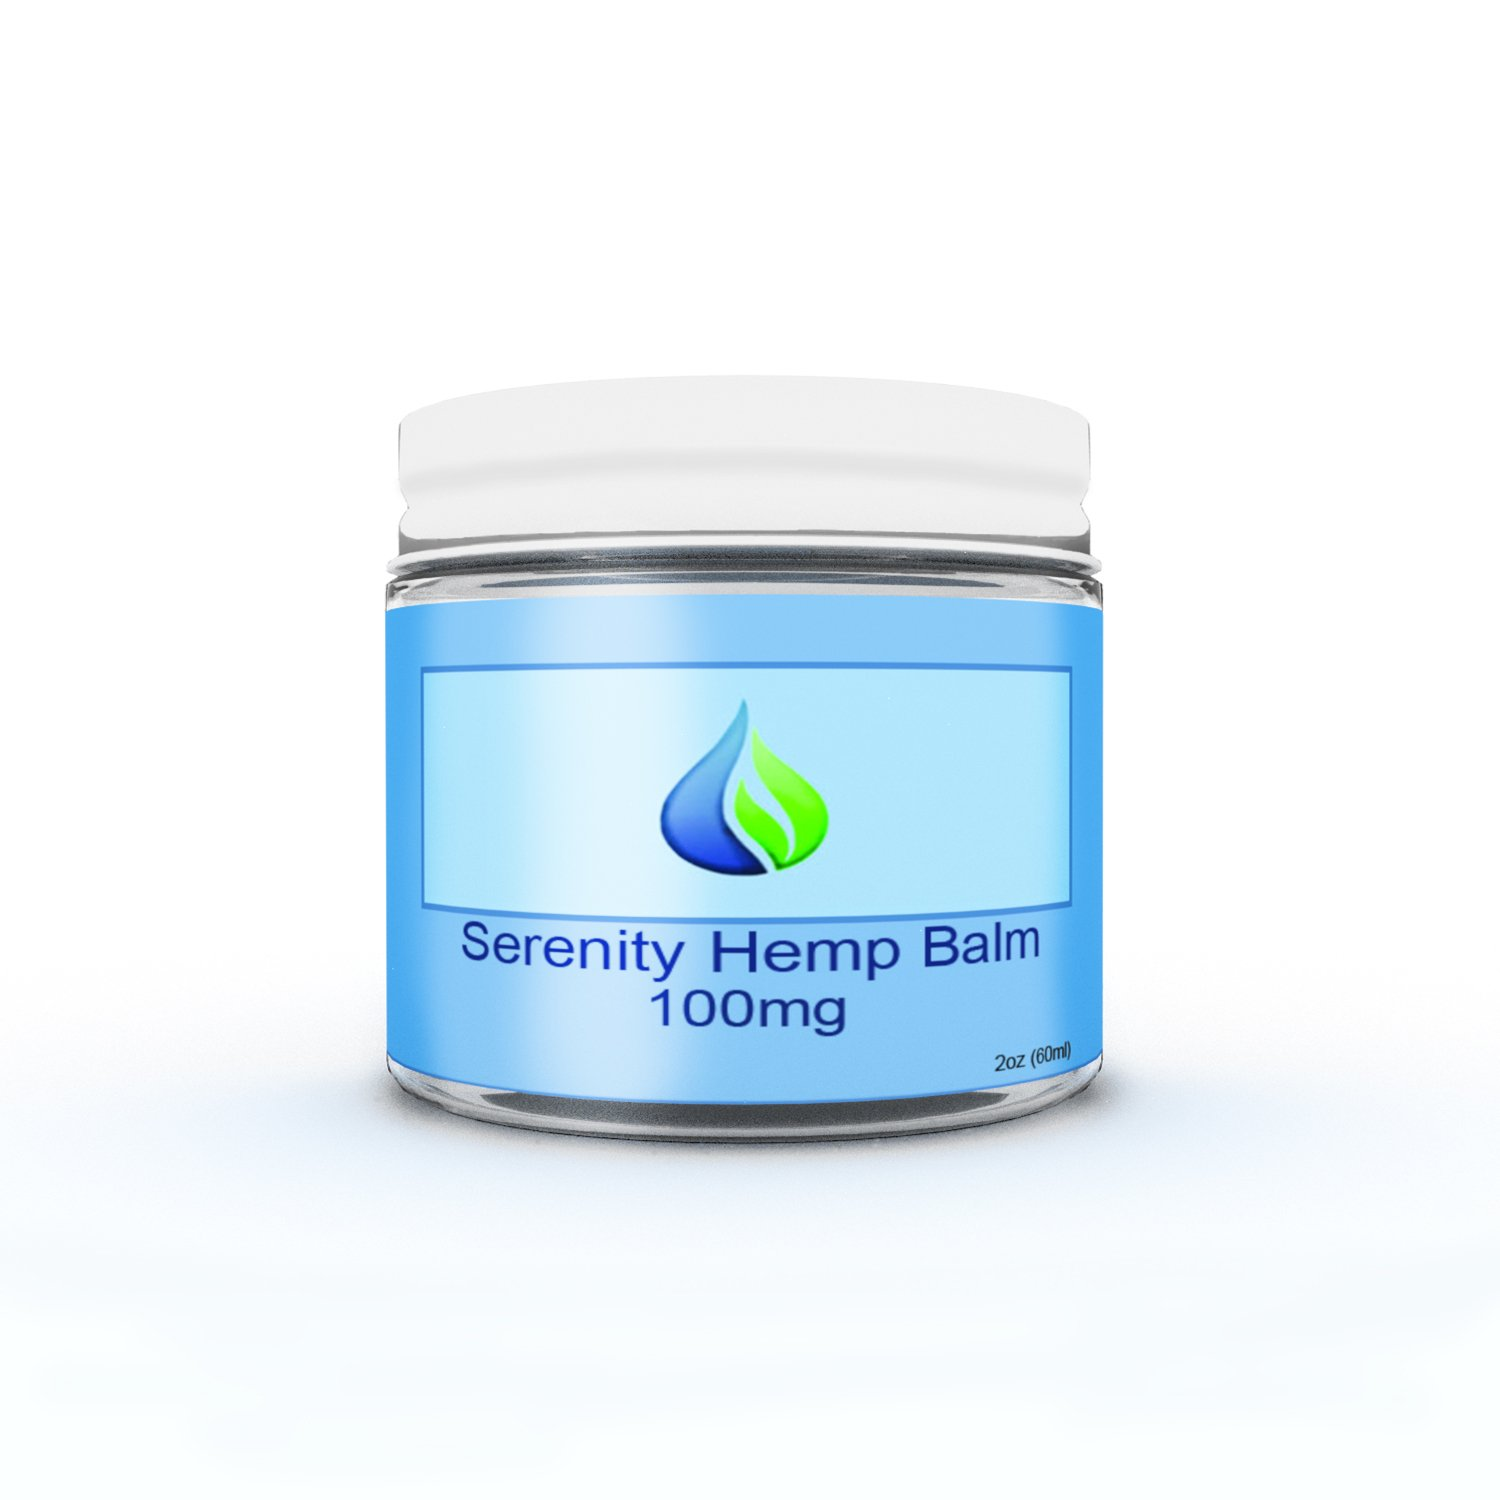 Serenity Hemp Soothing Muscle Salve/Balm - 2oz Jar - 100mg - Certified Organic - 99.9% Pure Full Spectrum Hemp Extract - Pain Relief Rub - Joint Pain - Stress - Anxiety